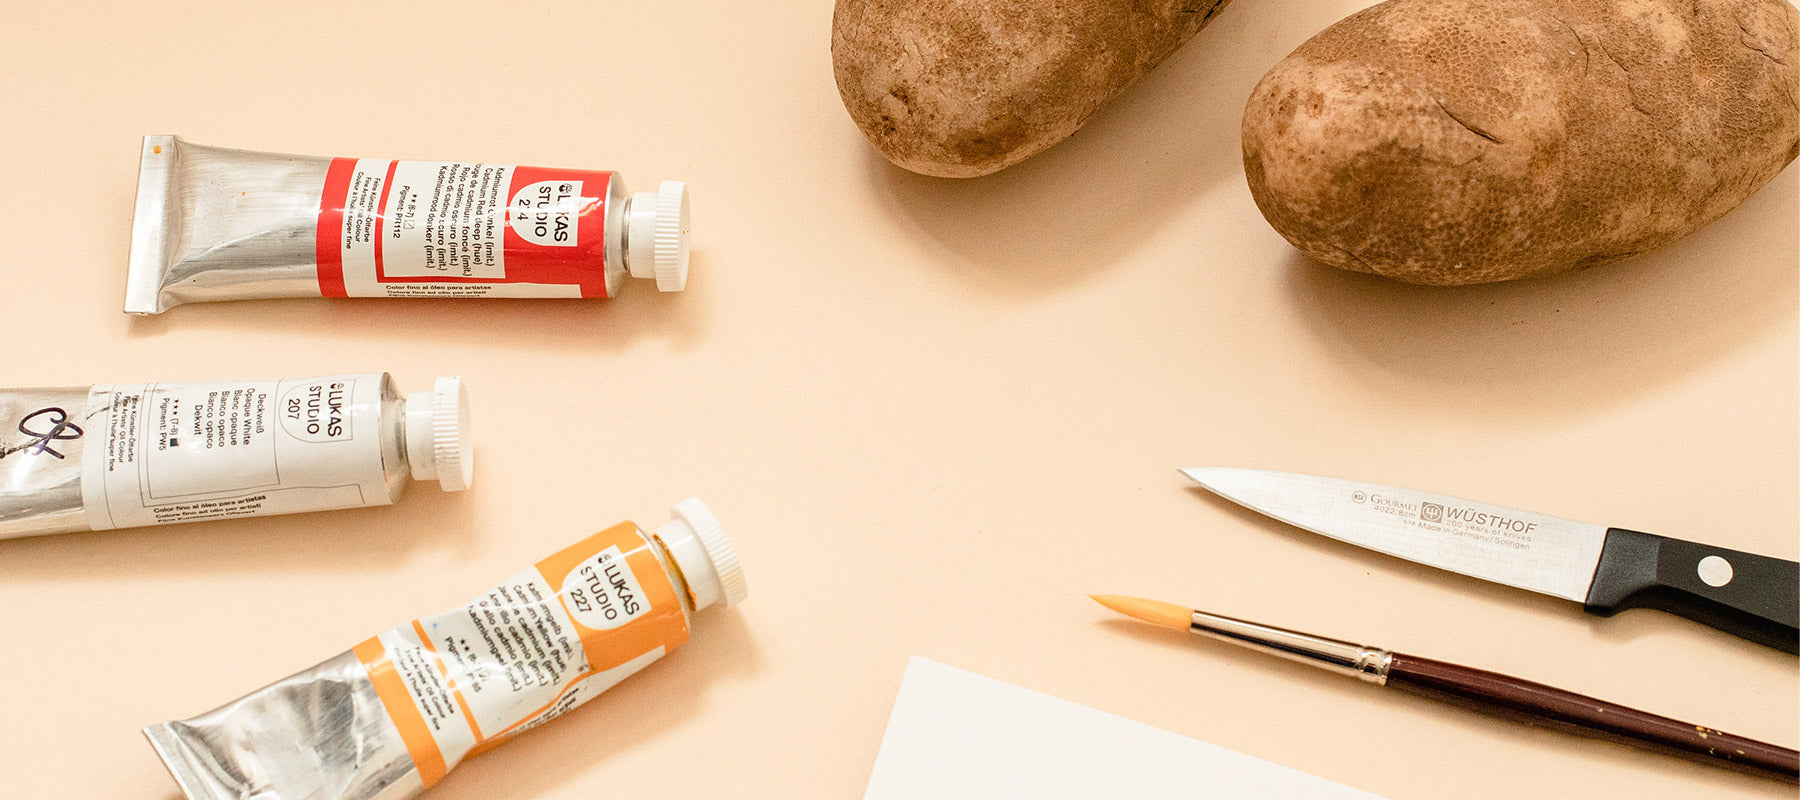 Image of paint, paint brush, potatos, knife and paper to make a DIY holiday card potato stamp.